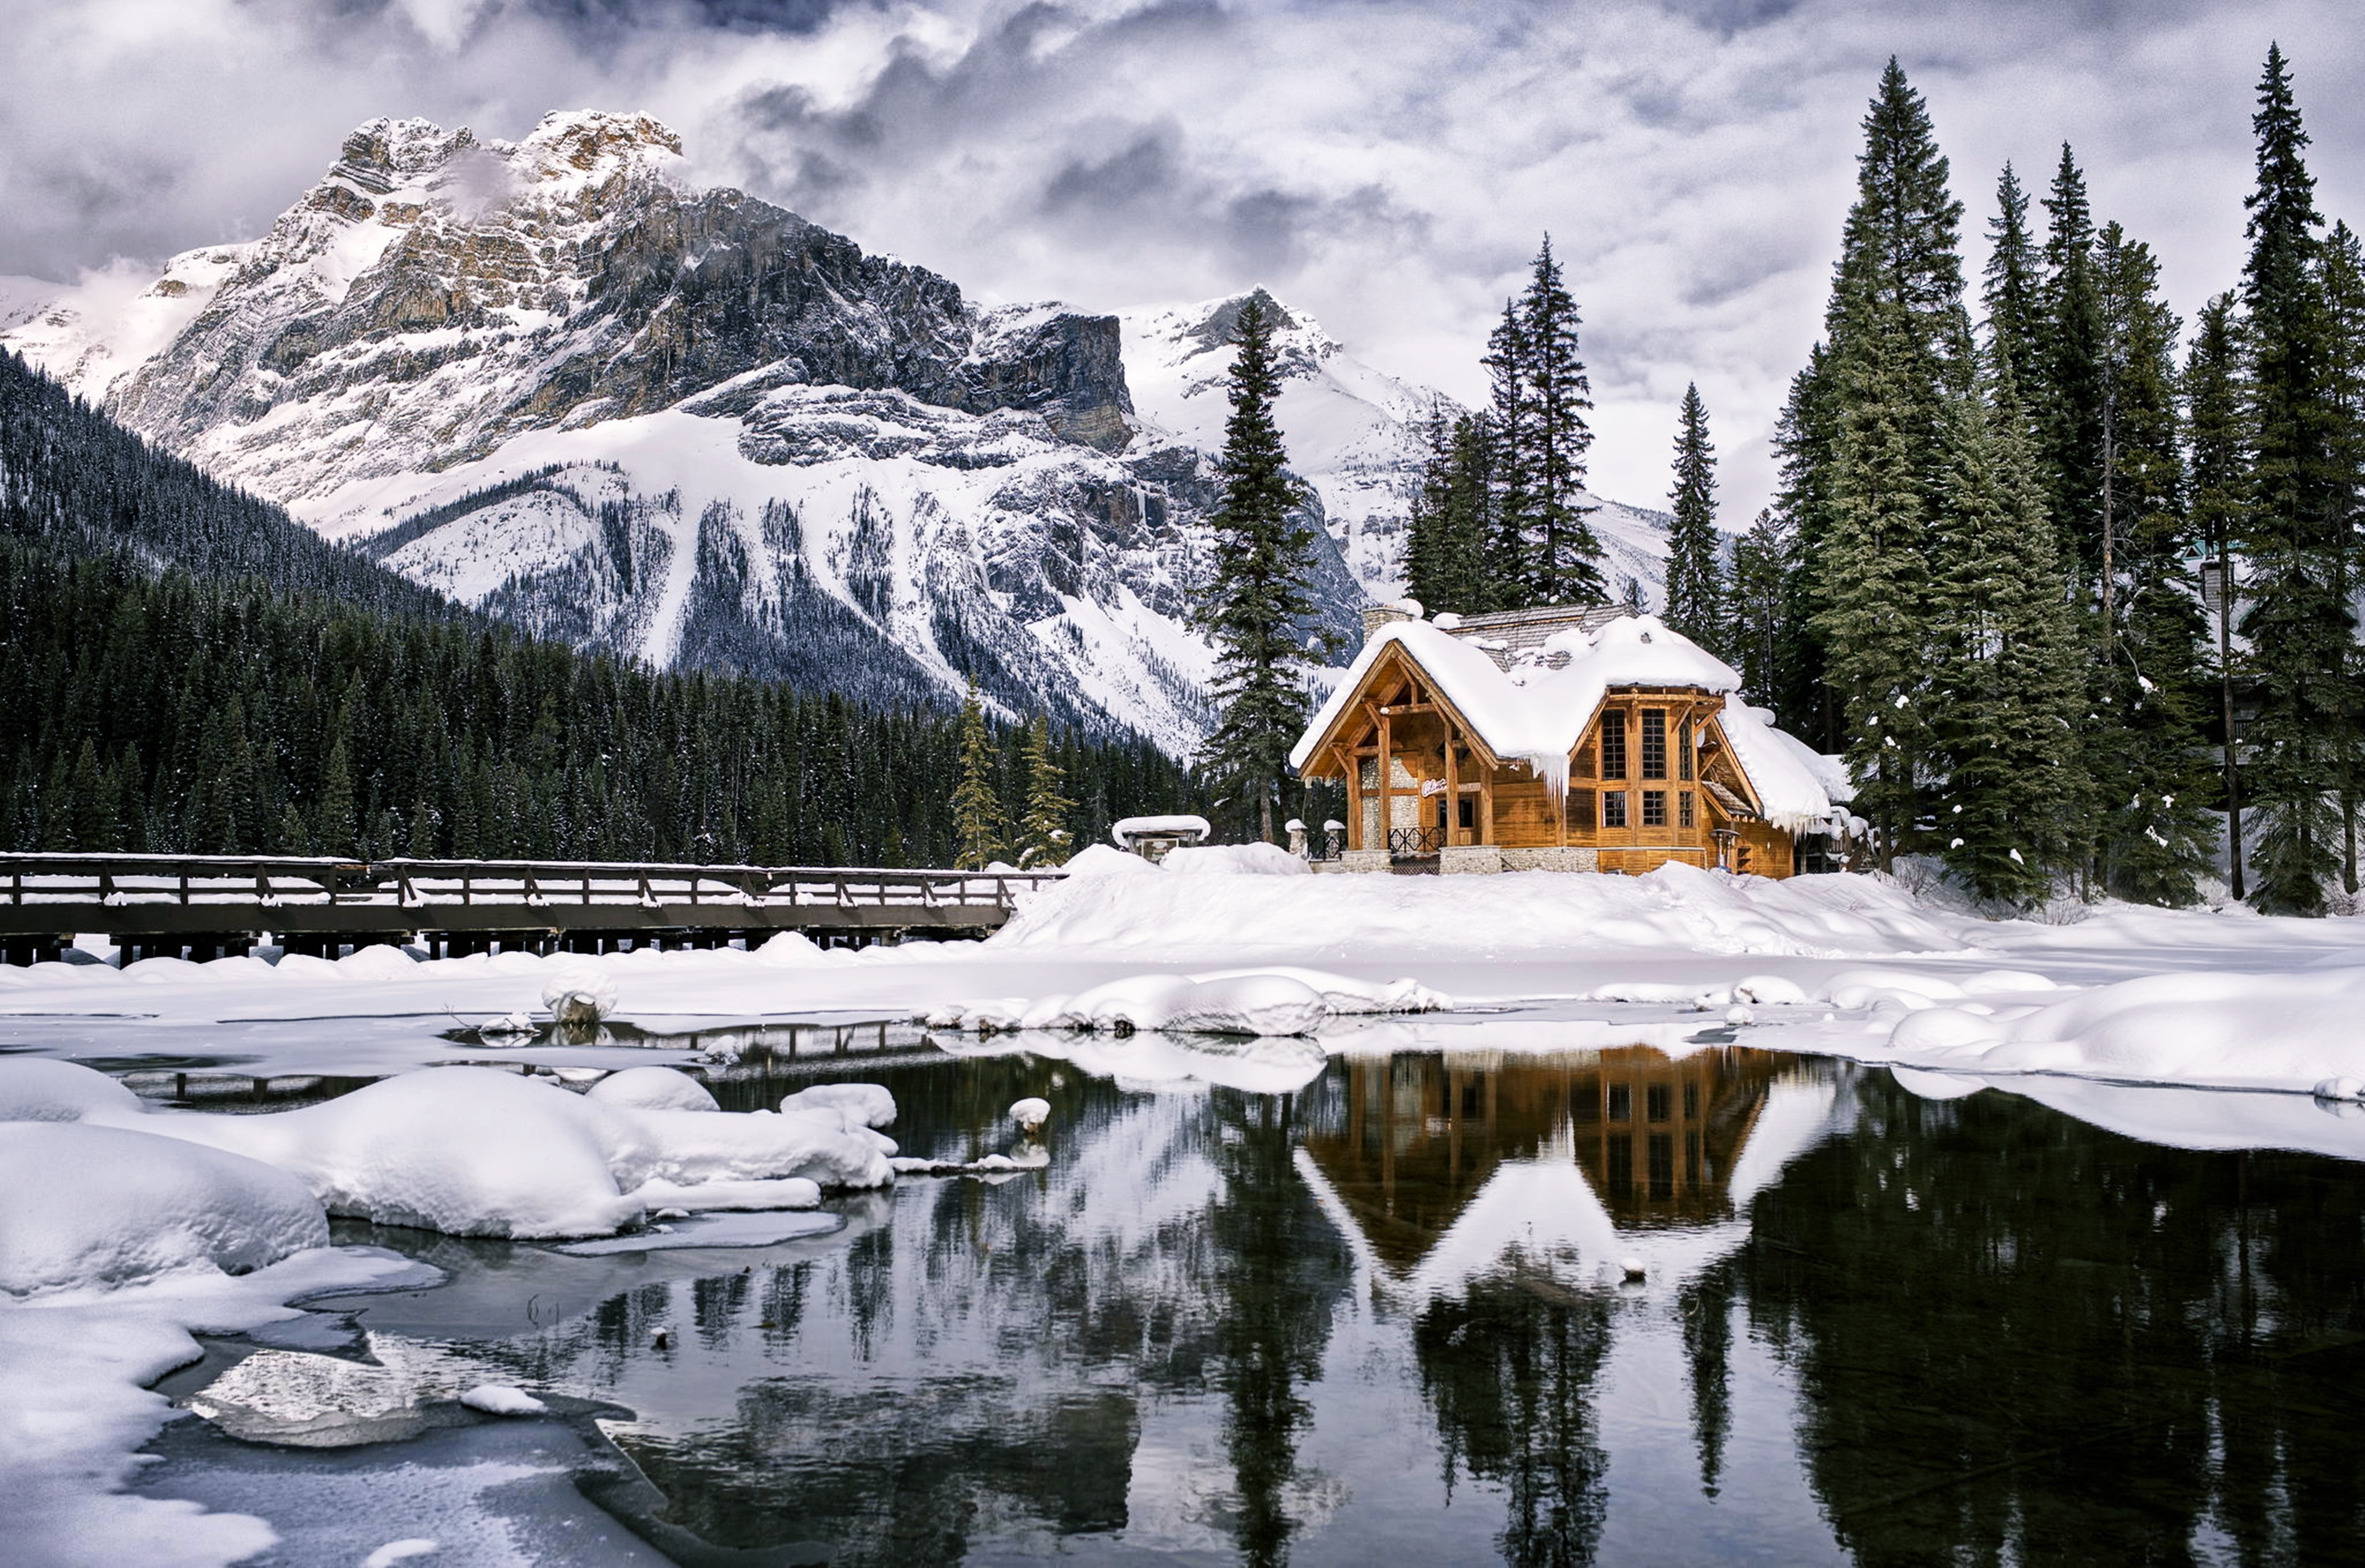 Haus am see wallpaper  Landscape 4k Ultra HD Wallpaper and Hintergrund | 3840x2546 | ID ...